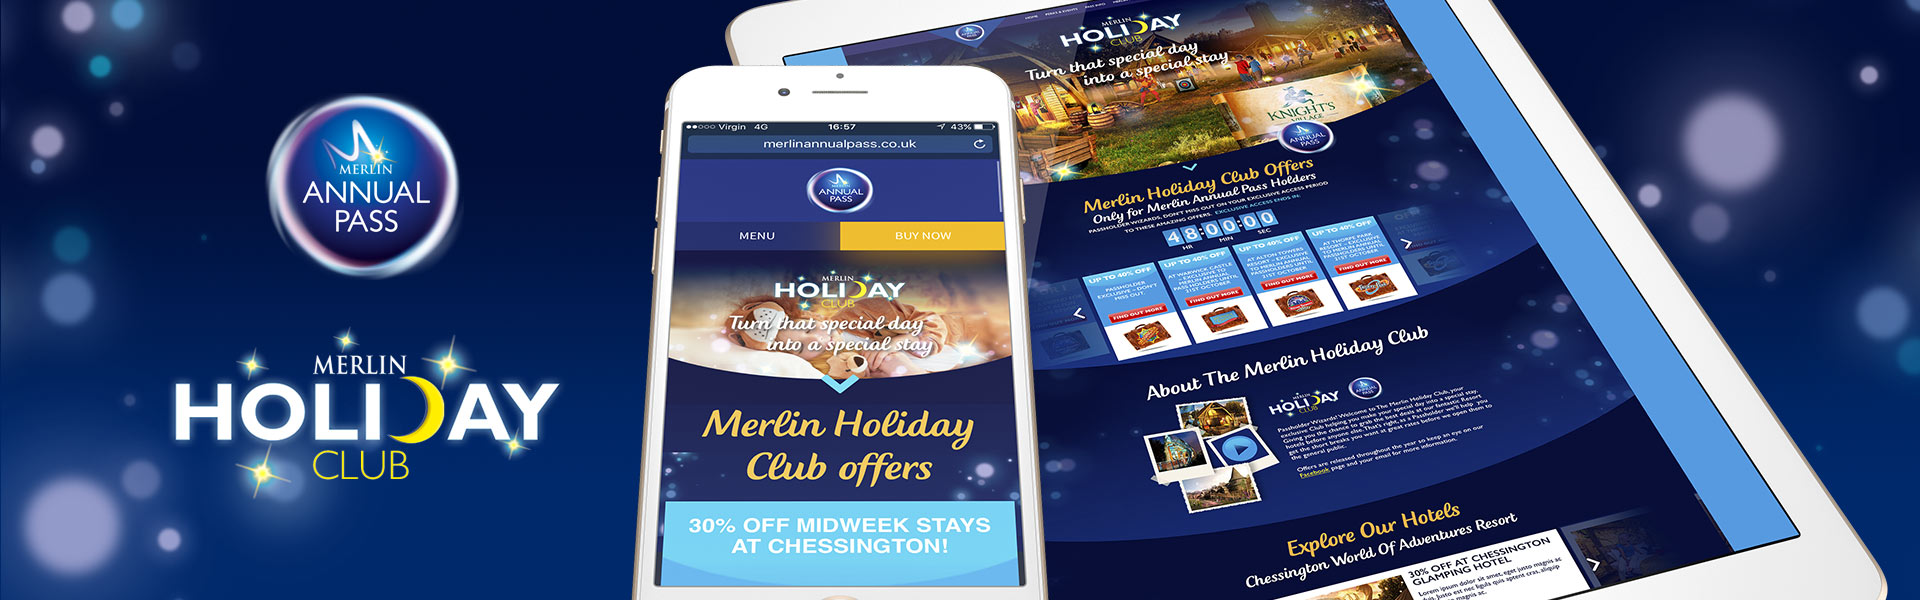 Merlin Holiday Club Website Design